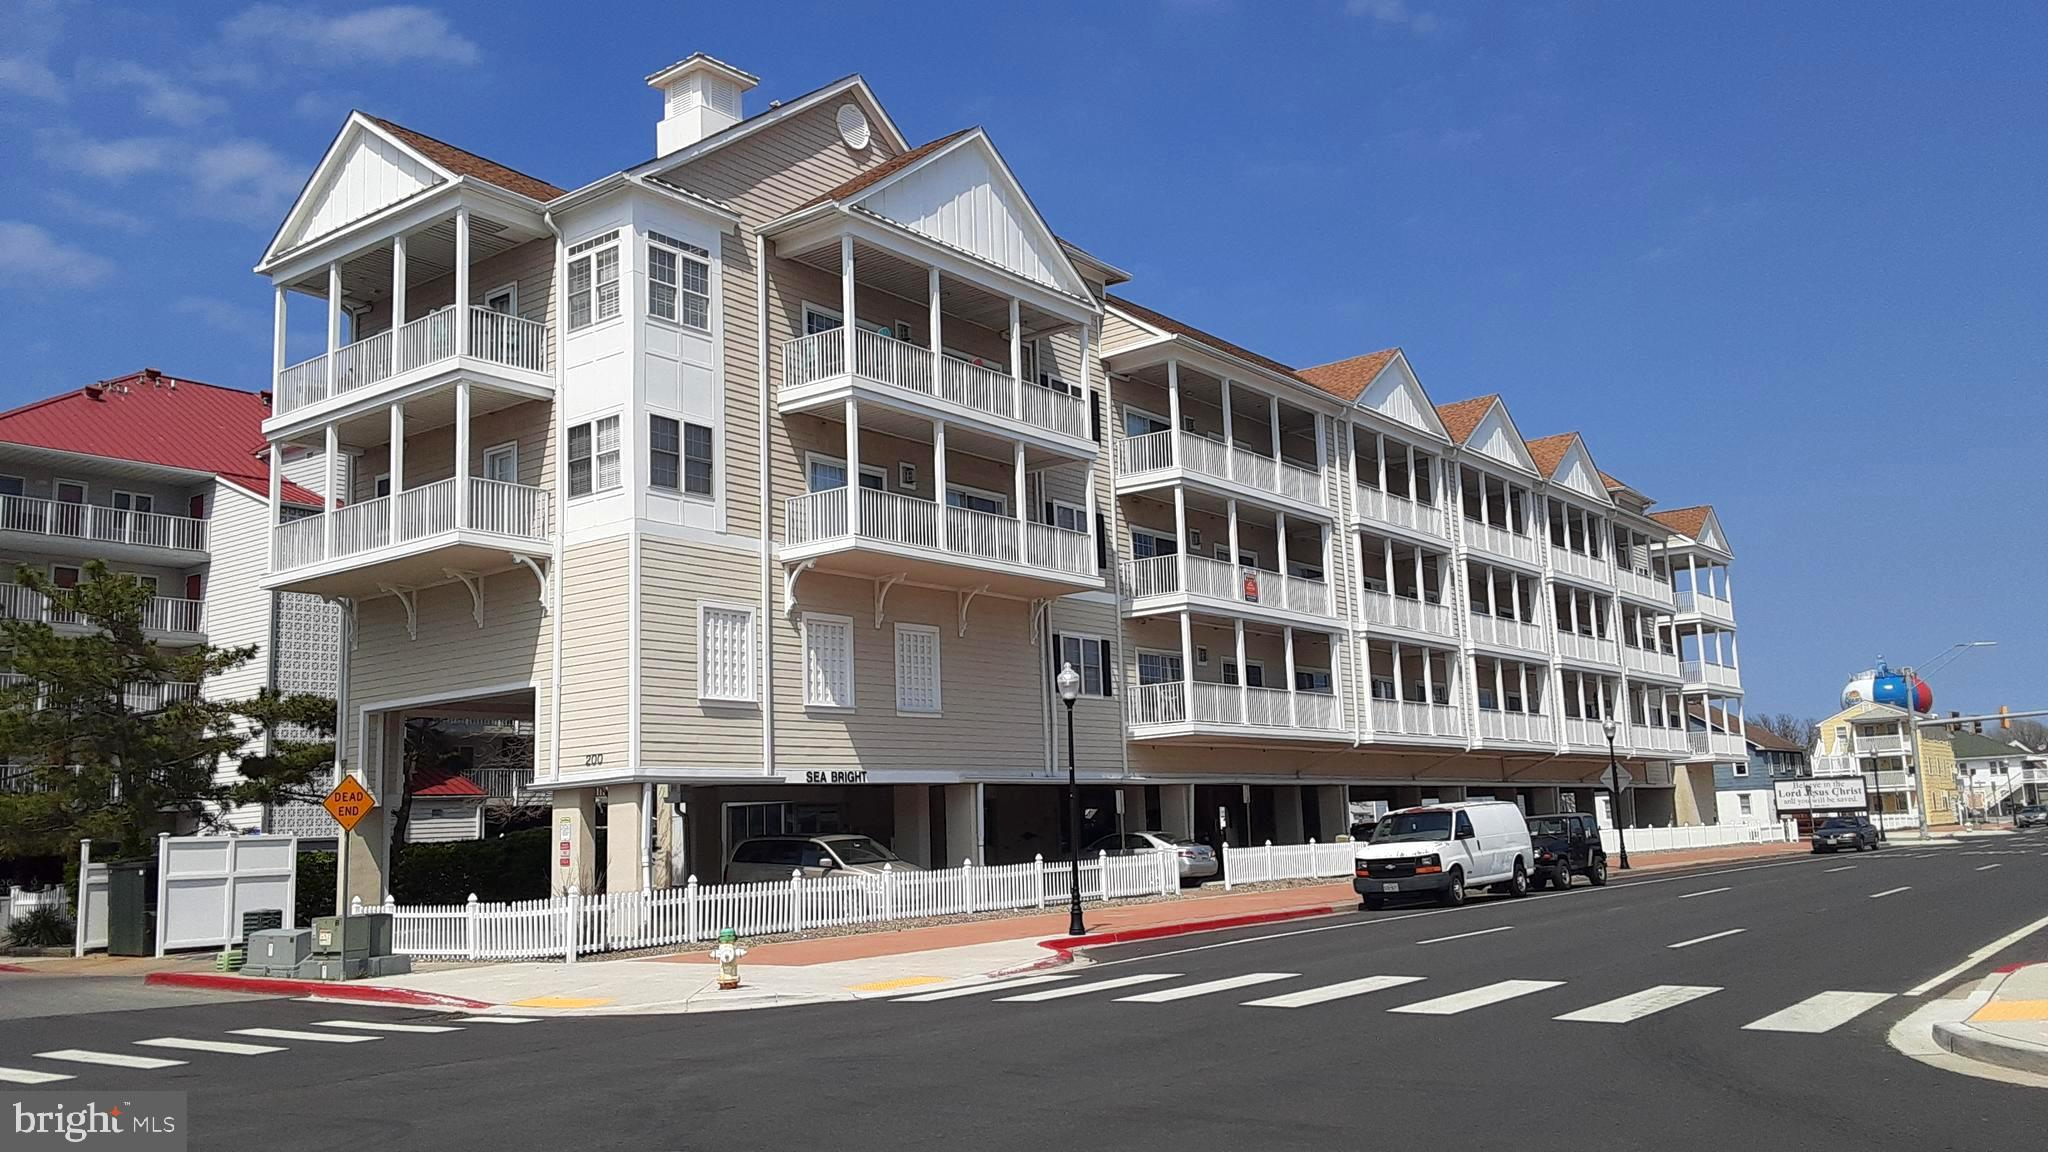 Pristine, turn key condo in fabulous downtown Ocean City location! Just two short blocks to the beach and all the excitement and activity that the Boardwalk has to offer including amusements, bars, restaurants and special events. Enjoy ocean, inlet and  city views  from your oversized balcony. Spacious, open floor plan with two large bedrooms, two  full baths and a gas fireplace to warm chilly nights.  A walk-in closet adjoins the master bedroom.  Beautiful, fully equipped  kitchen features granite counter tops, tile flooring,  plenty of cabinets and an island with bar seating.  A hand painted seascape mural accents the entry way.  Master bath offers a jetted soaking tub, double sinks and a separate shower.  Convenient parking with two assigned spaces underneath the building. This meticulously maintained, fully furnished condo is the perfect vacation home for your family or the ideal rental/investment opportunity.  Schedule your appointment today!